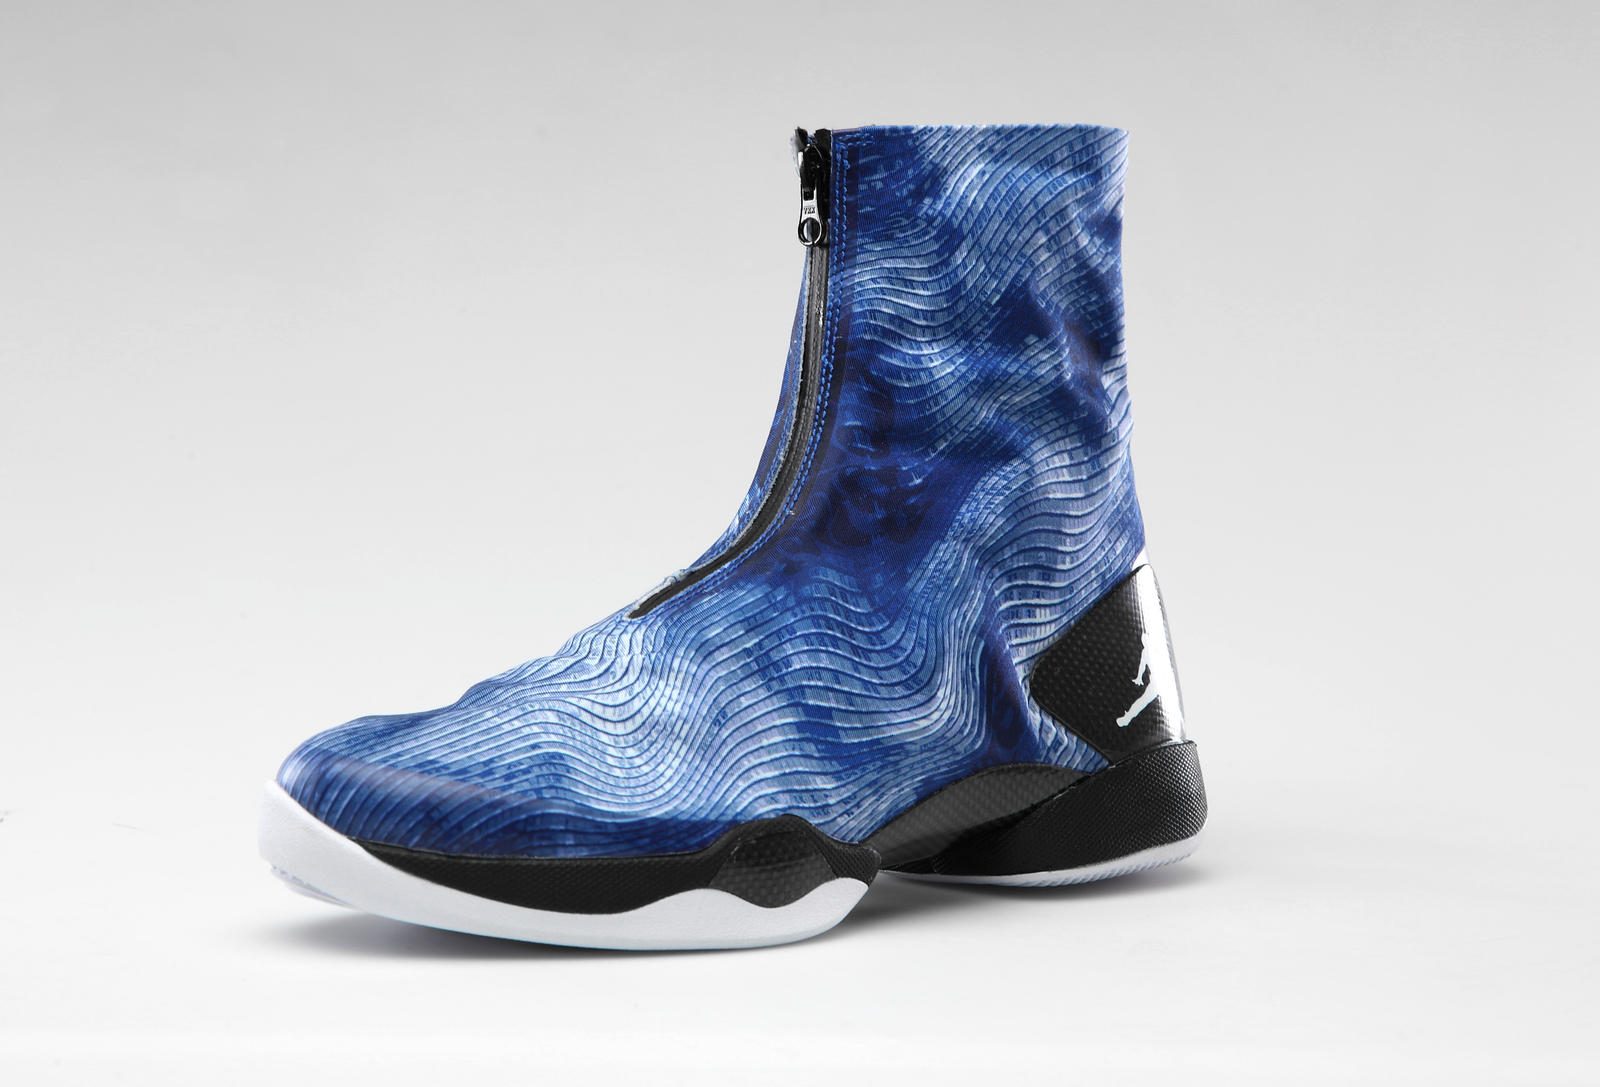 russell westbrook unveils a new air jordan xx8 colorway